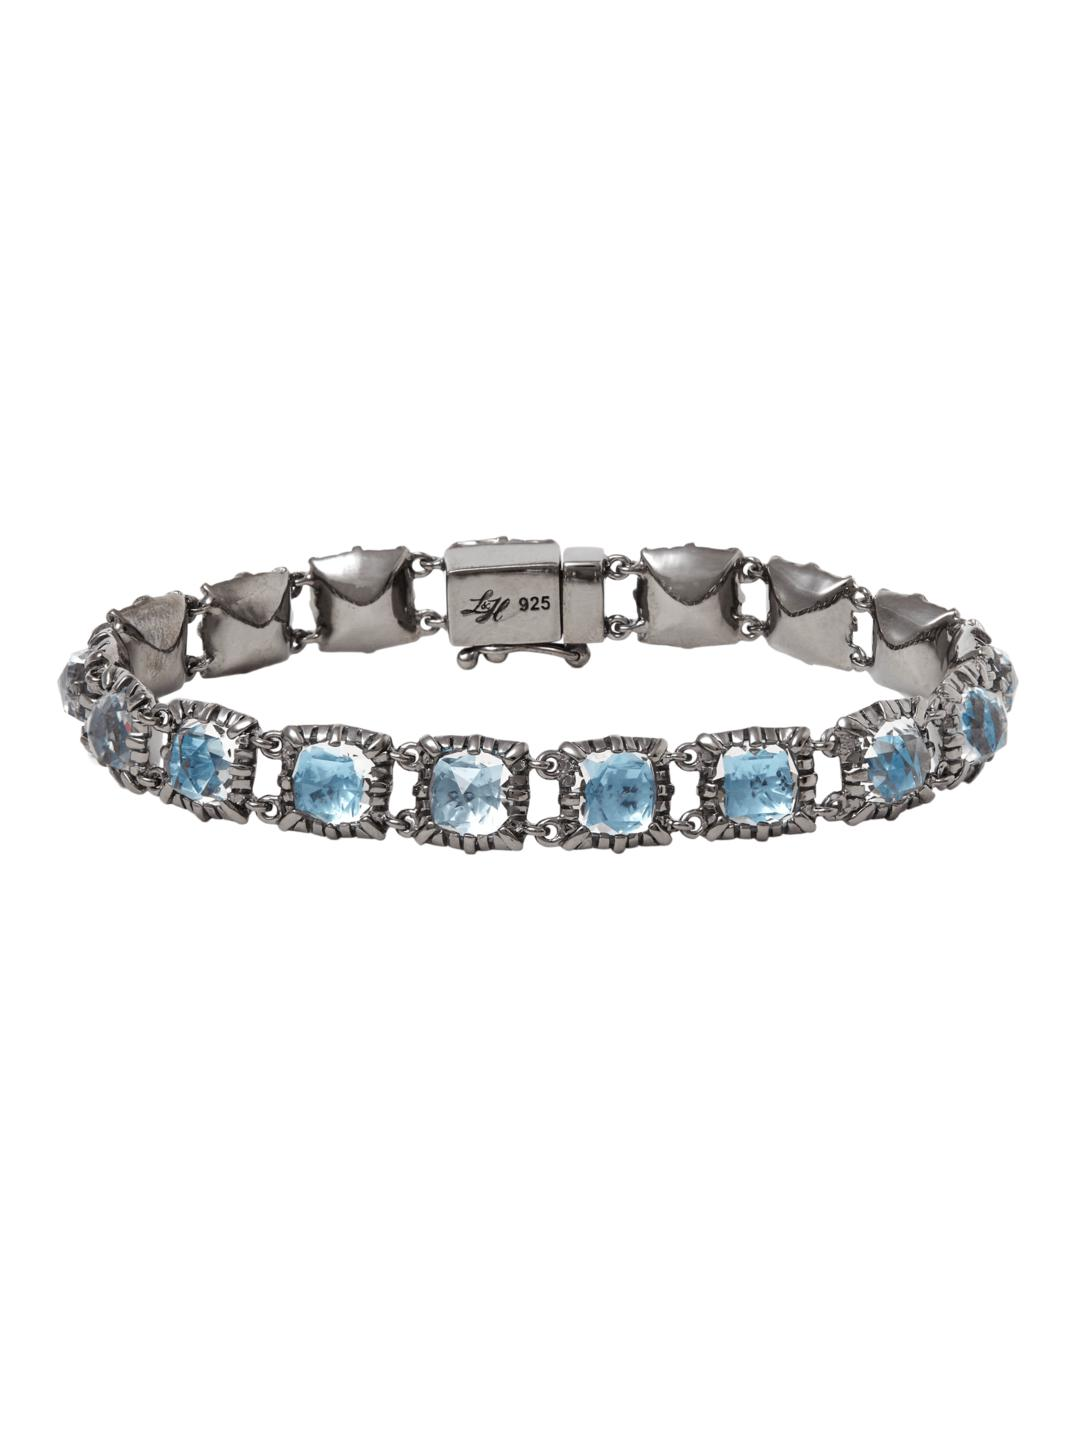 Larkspur & Hawk Small Bella Jeu de Paume Bracelet in White Foil